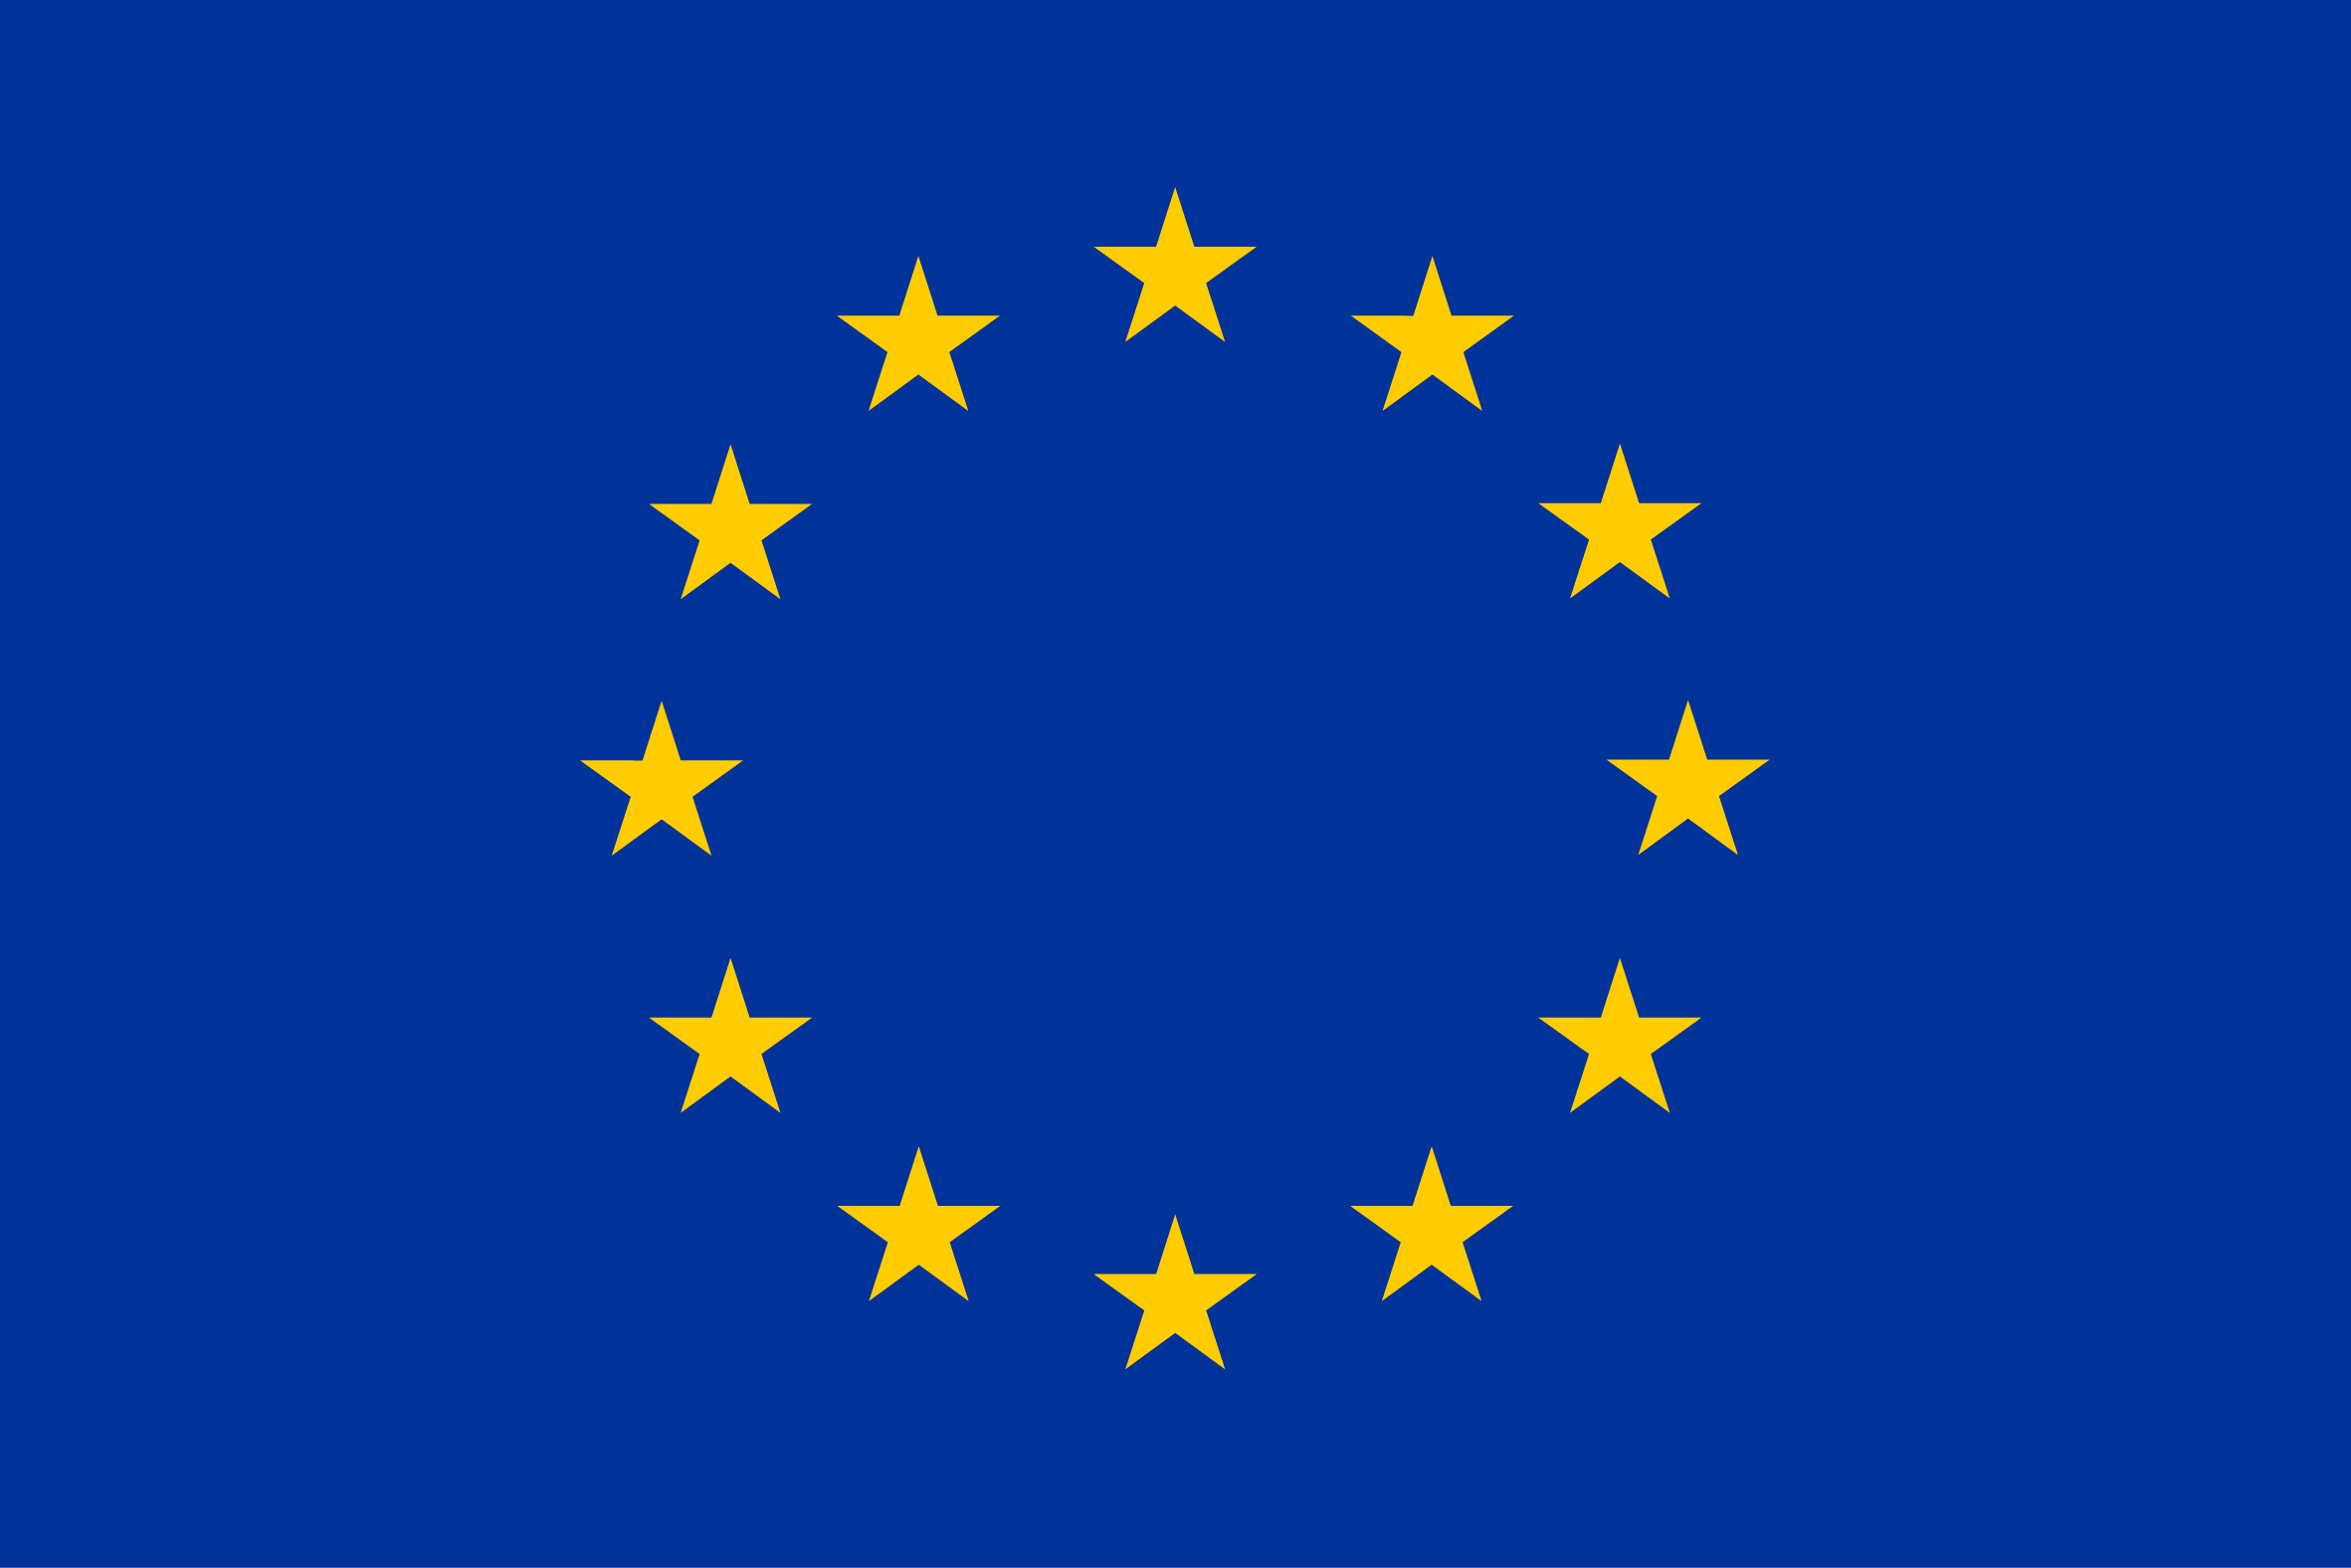 https://europa.eu/european-union/sites/europaeu/files/docs/body/flag_yellow_high.jpg